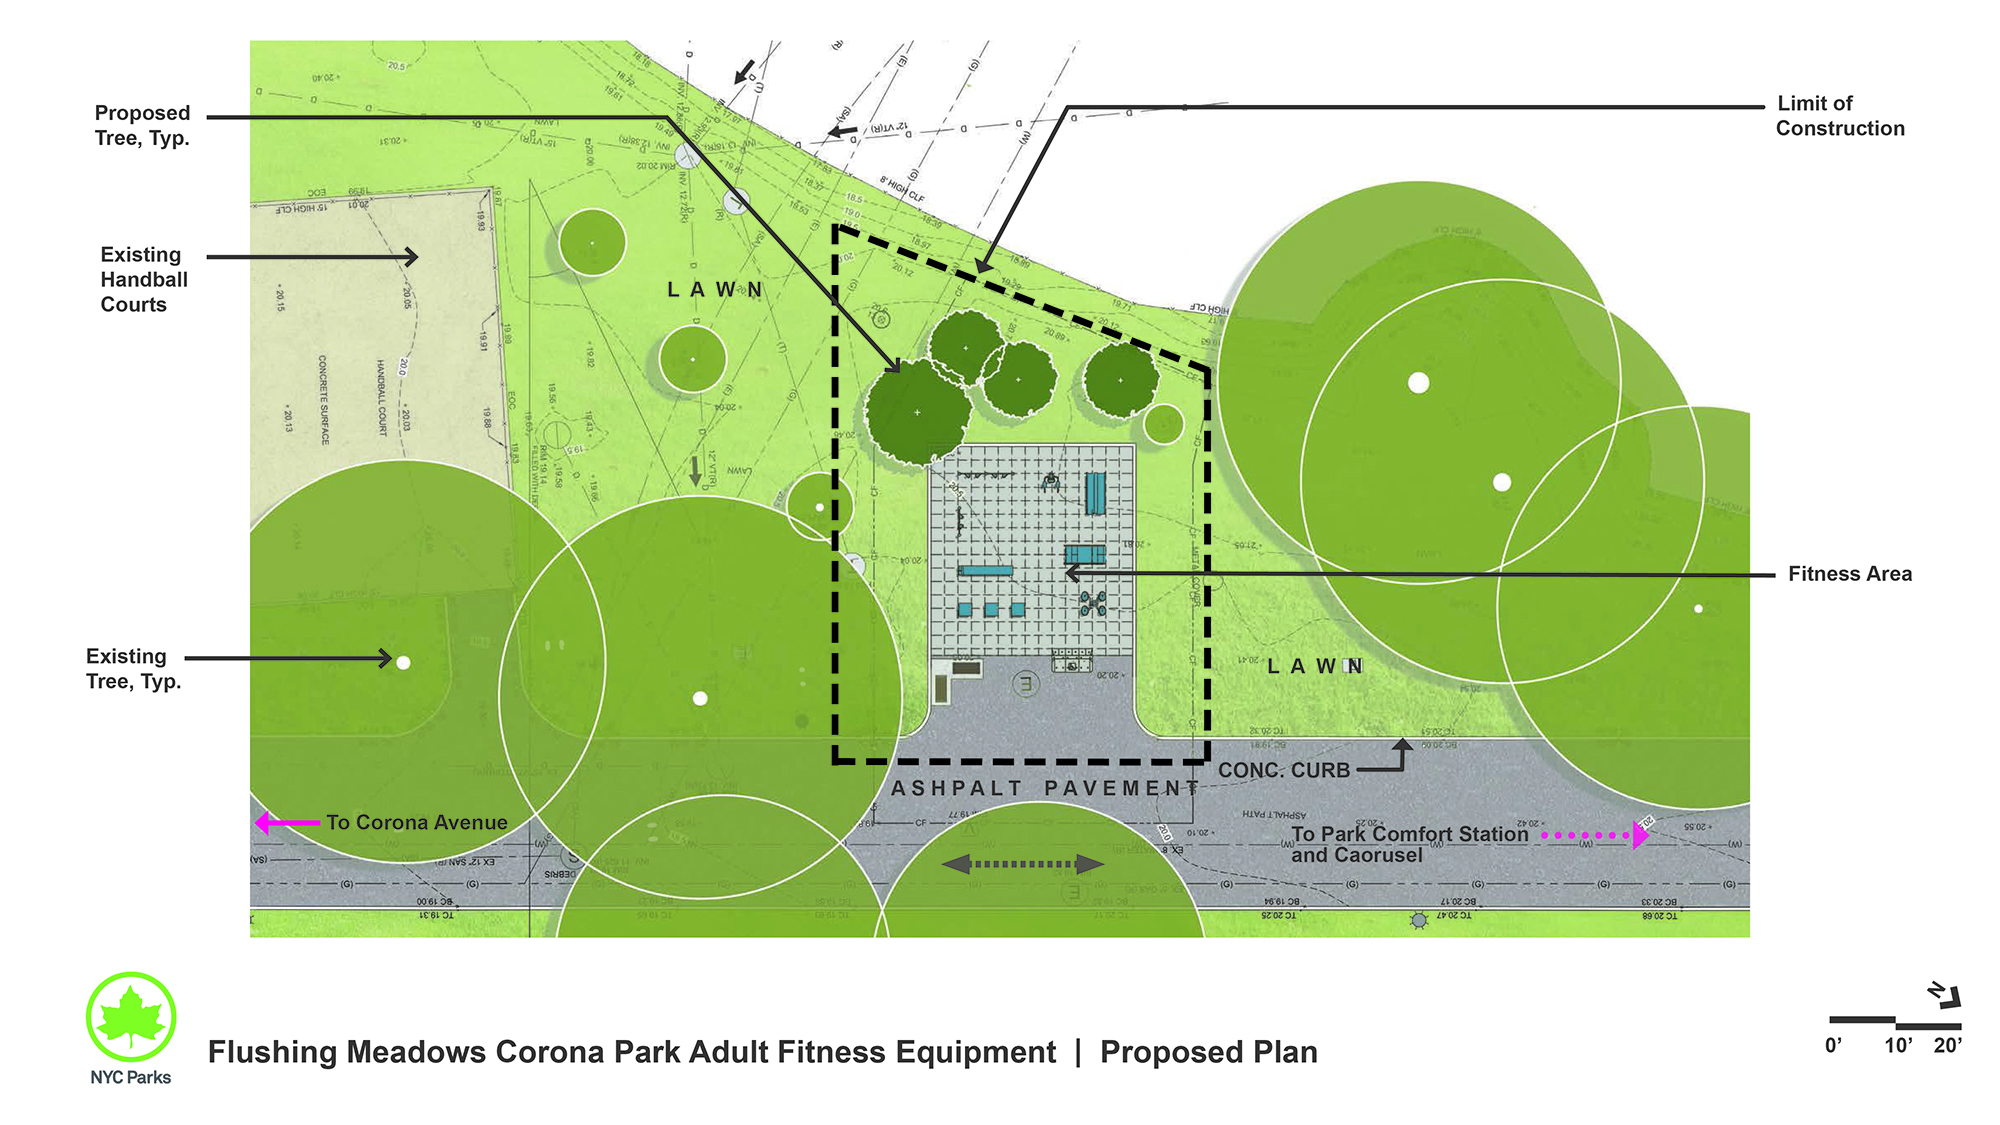 Design of Flushing Meadows Corona Park Adult Fitness Equipment Installation